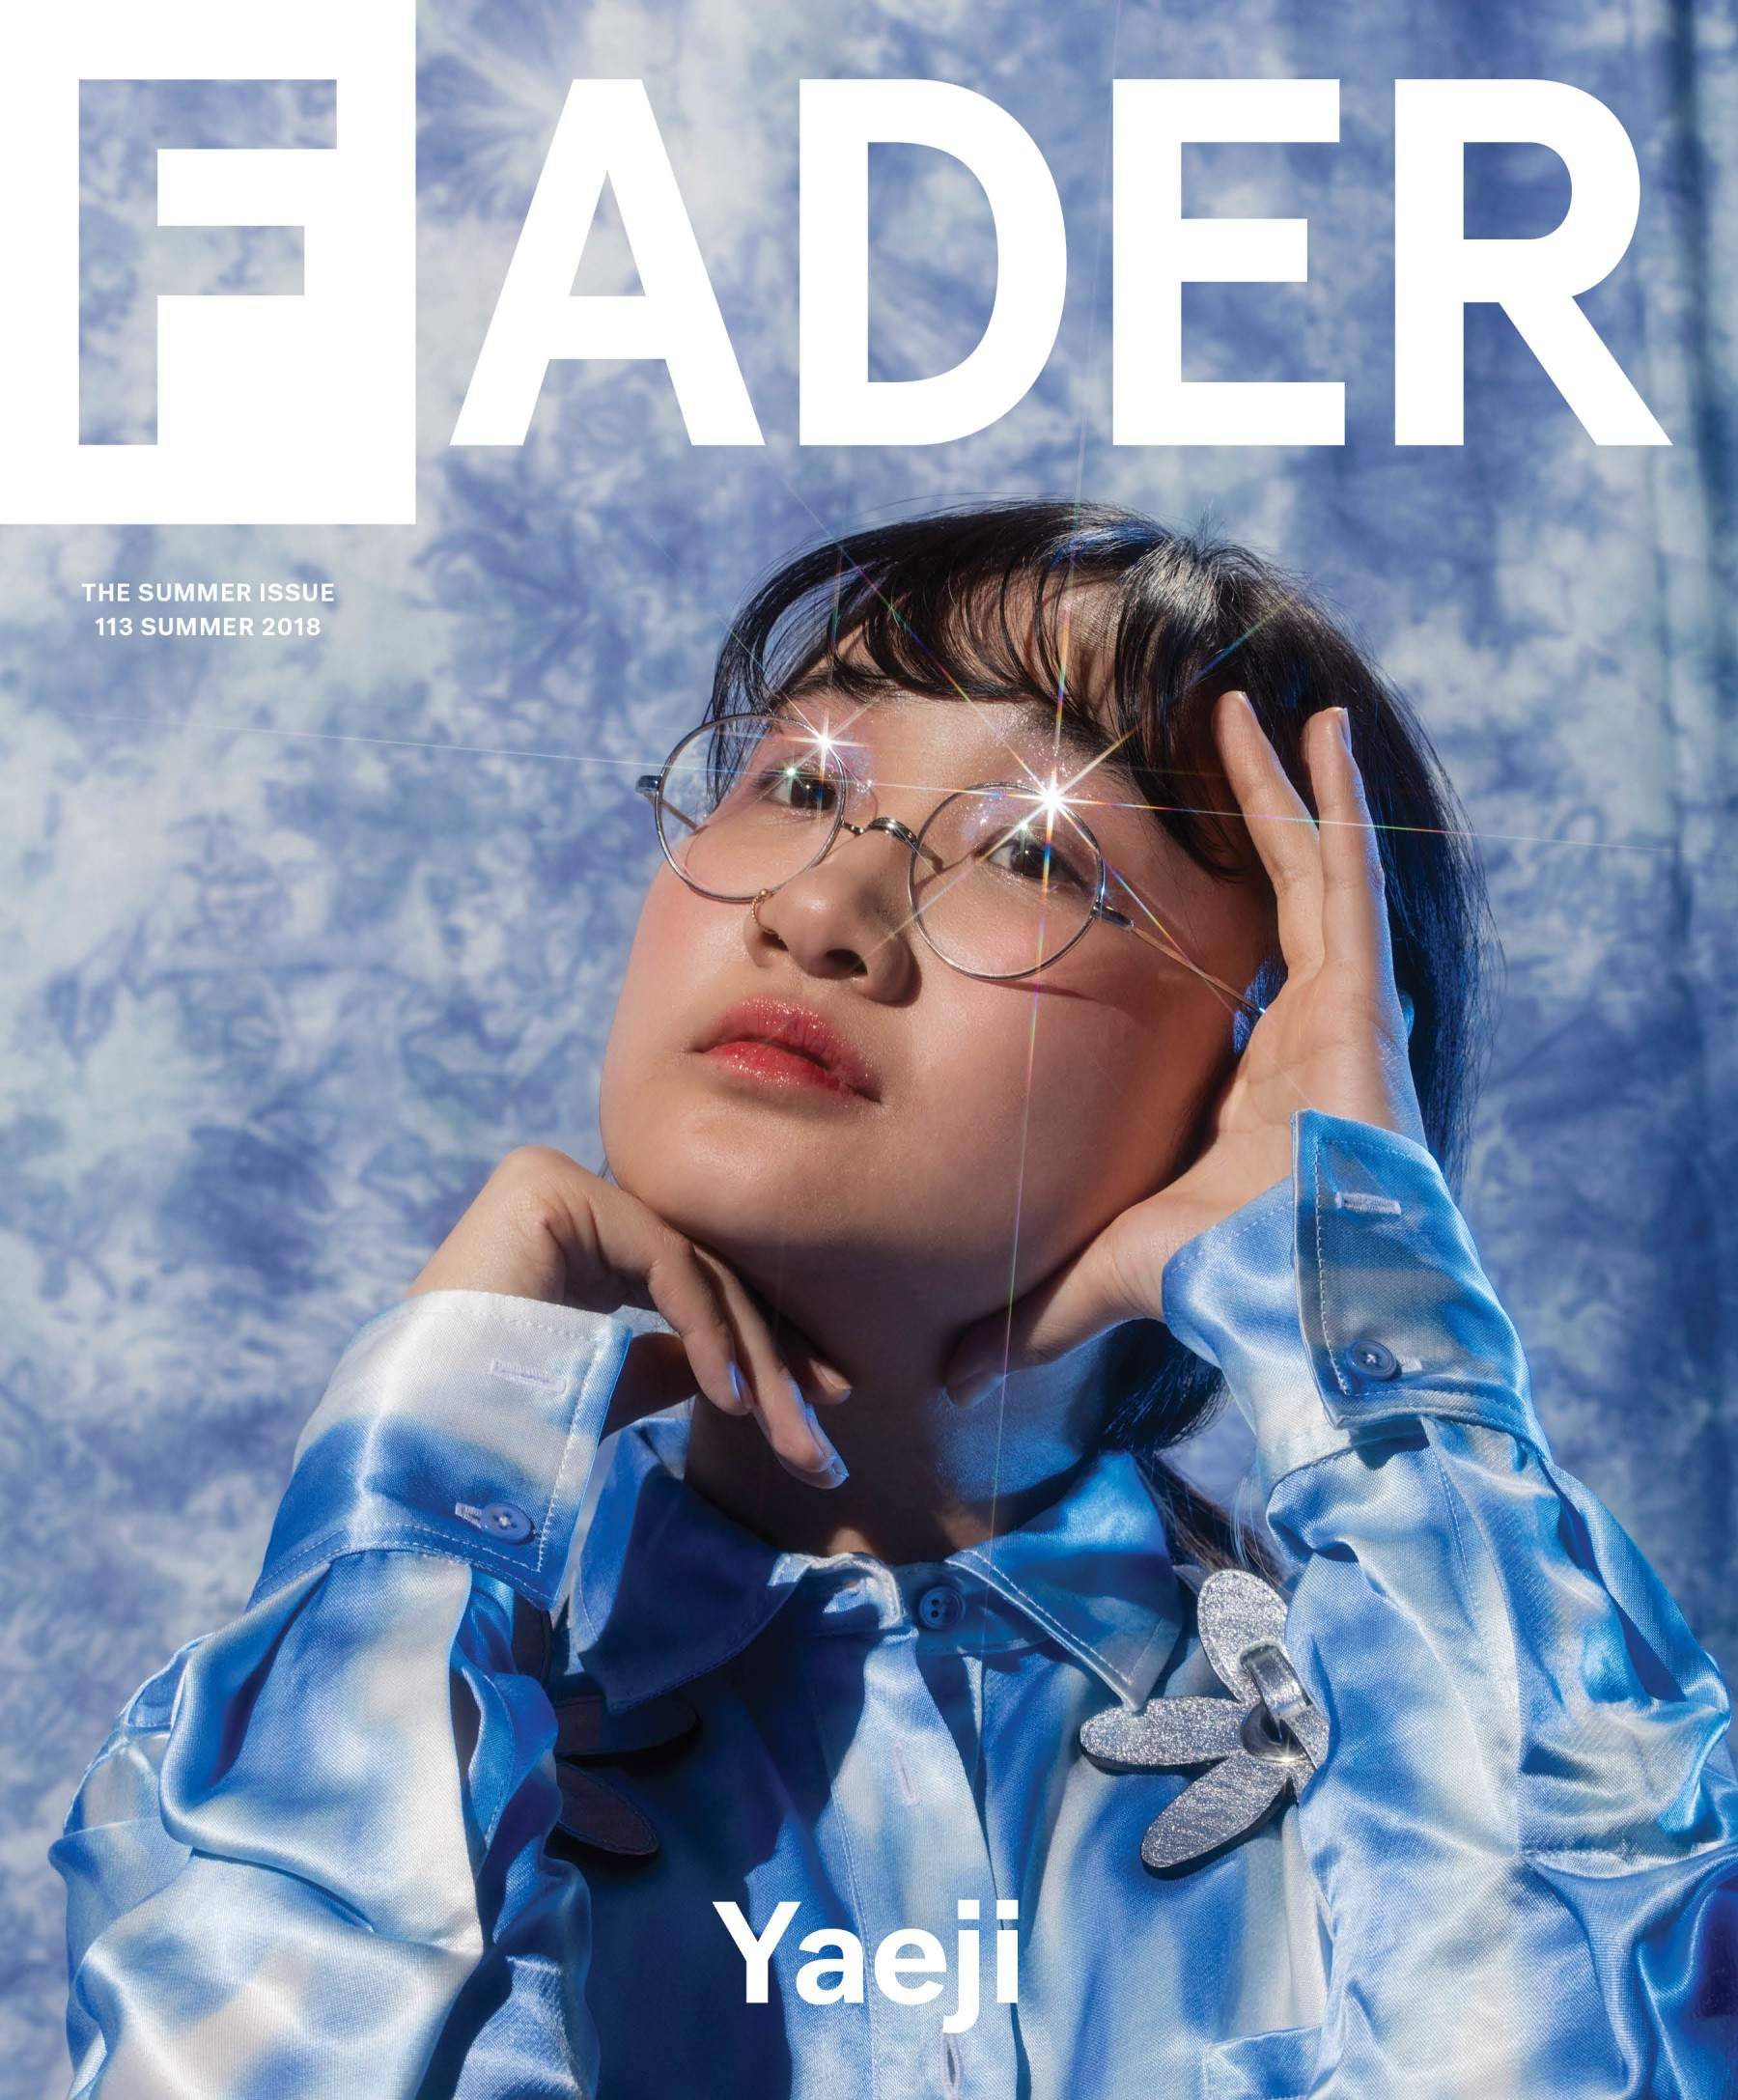 Photo Direction by Emily Keegin  Photographer: David Brandon Geeting  For The FADER